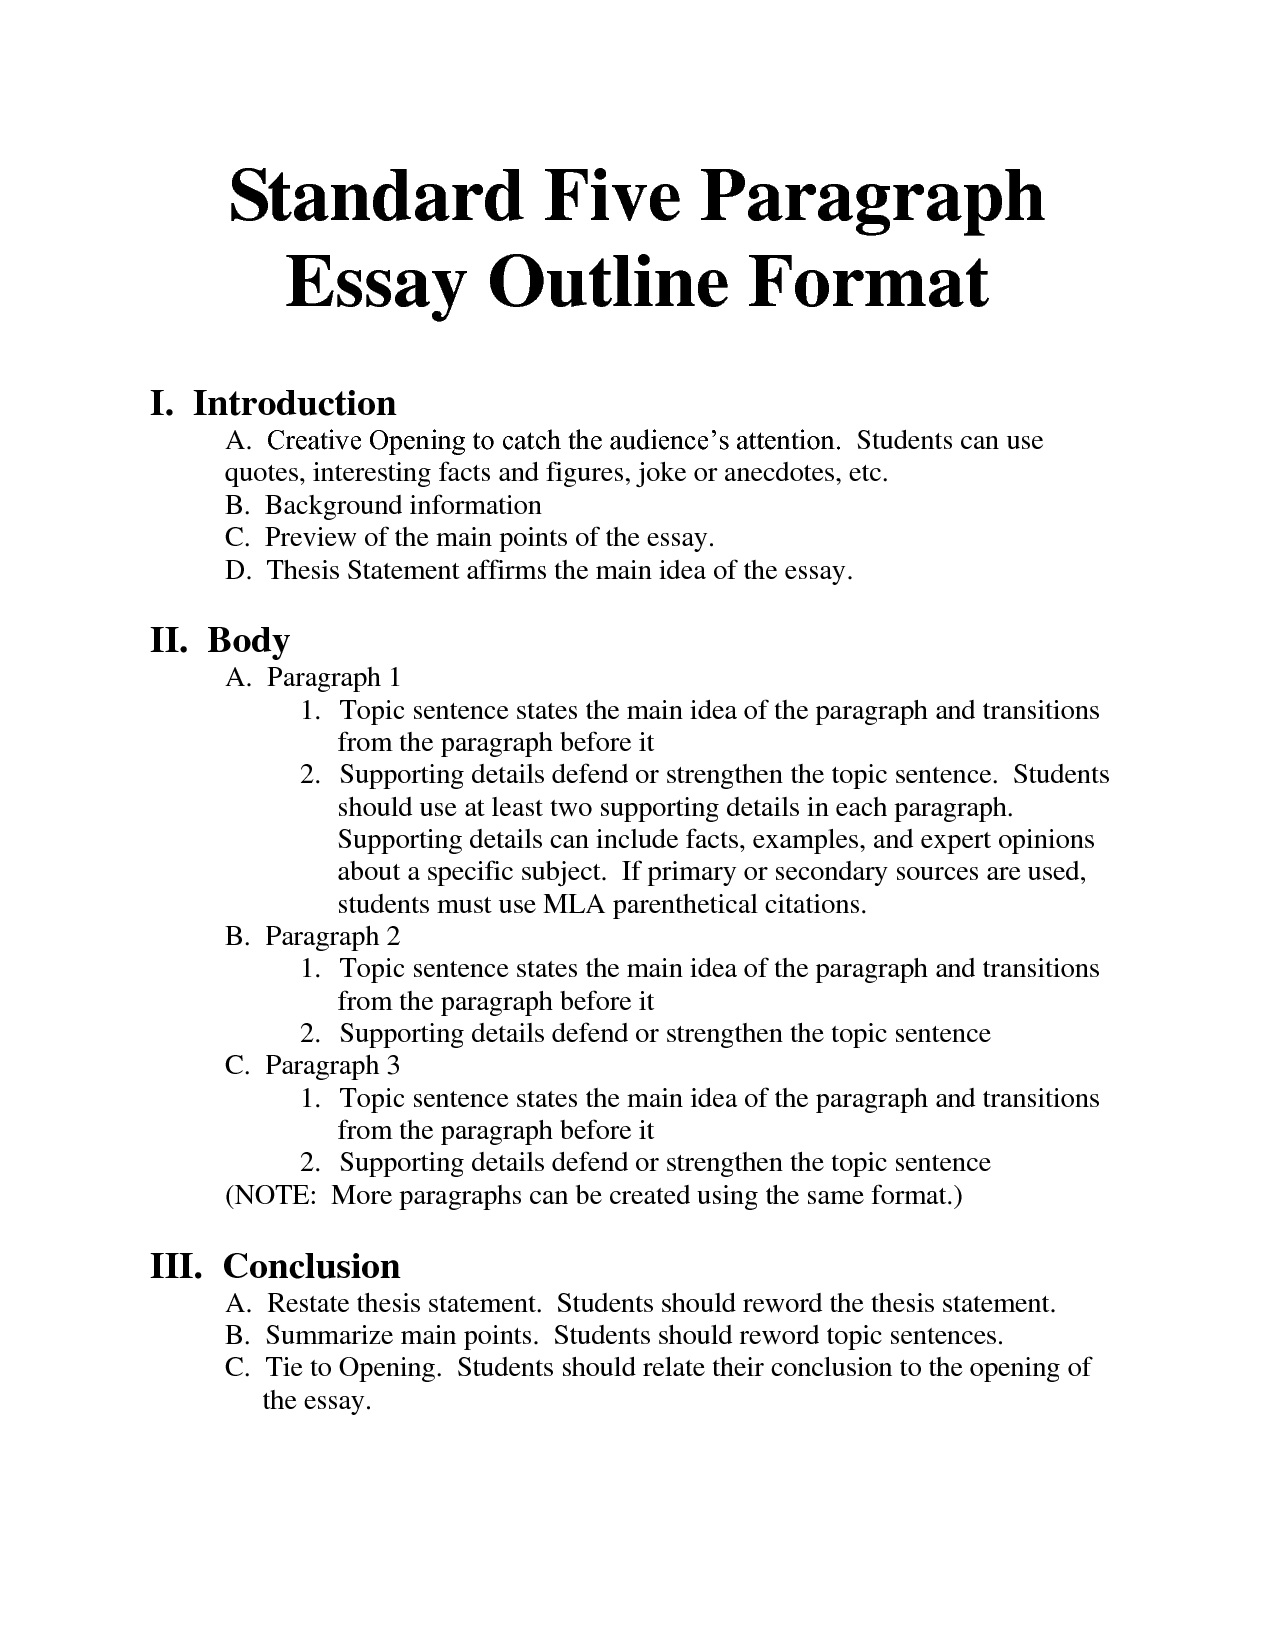 research paper mla format generator for quotes encouraging essay   research paper mla format generator for quotes encouraging essay outline  basics